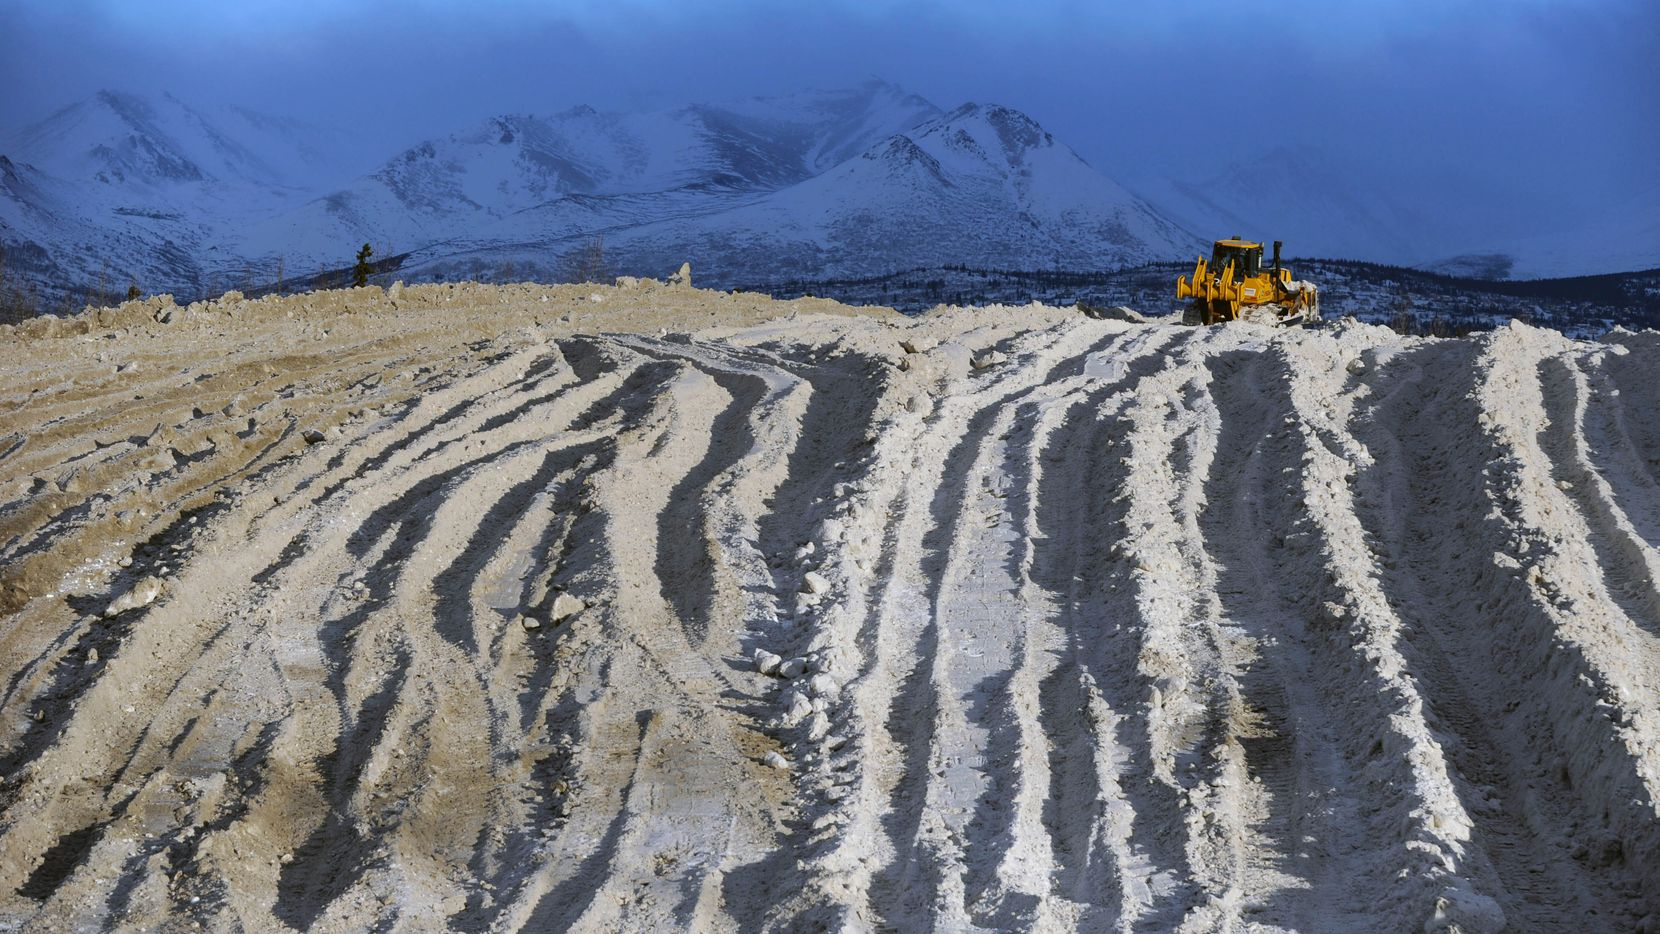 Heavy equipment pushes snow at an Alaska snow dump site in Anchorage.